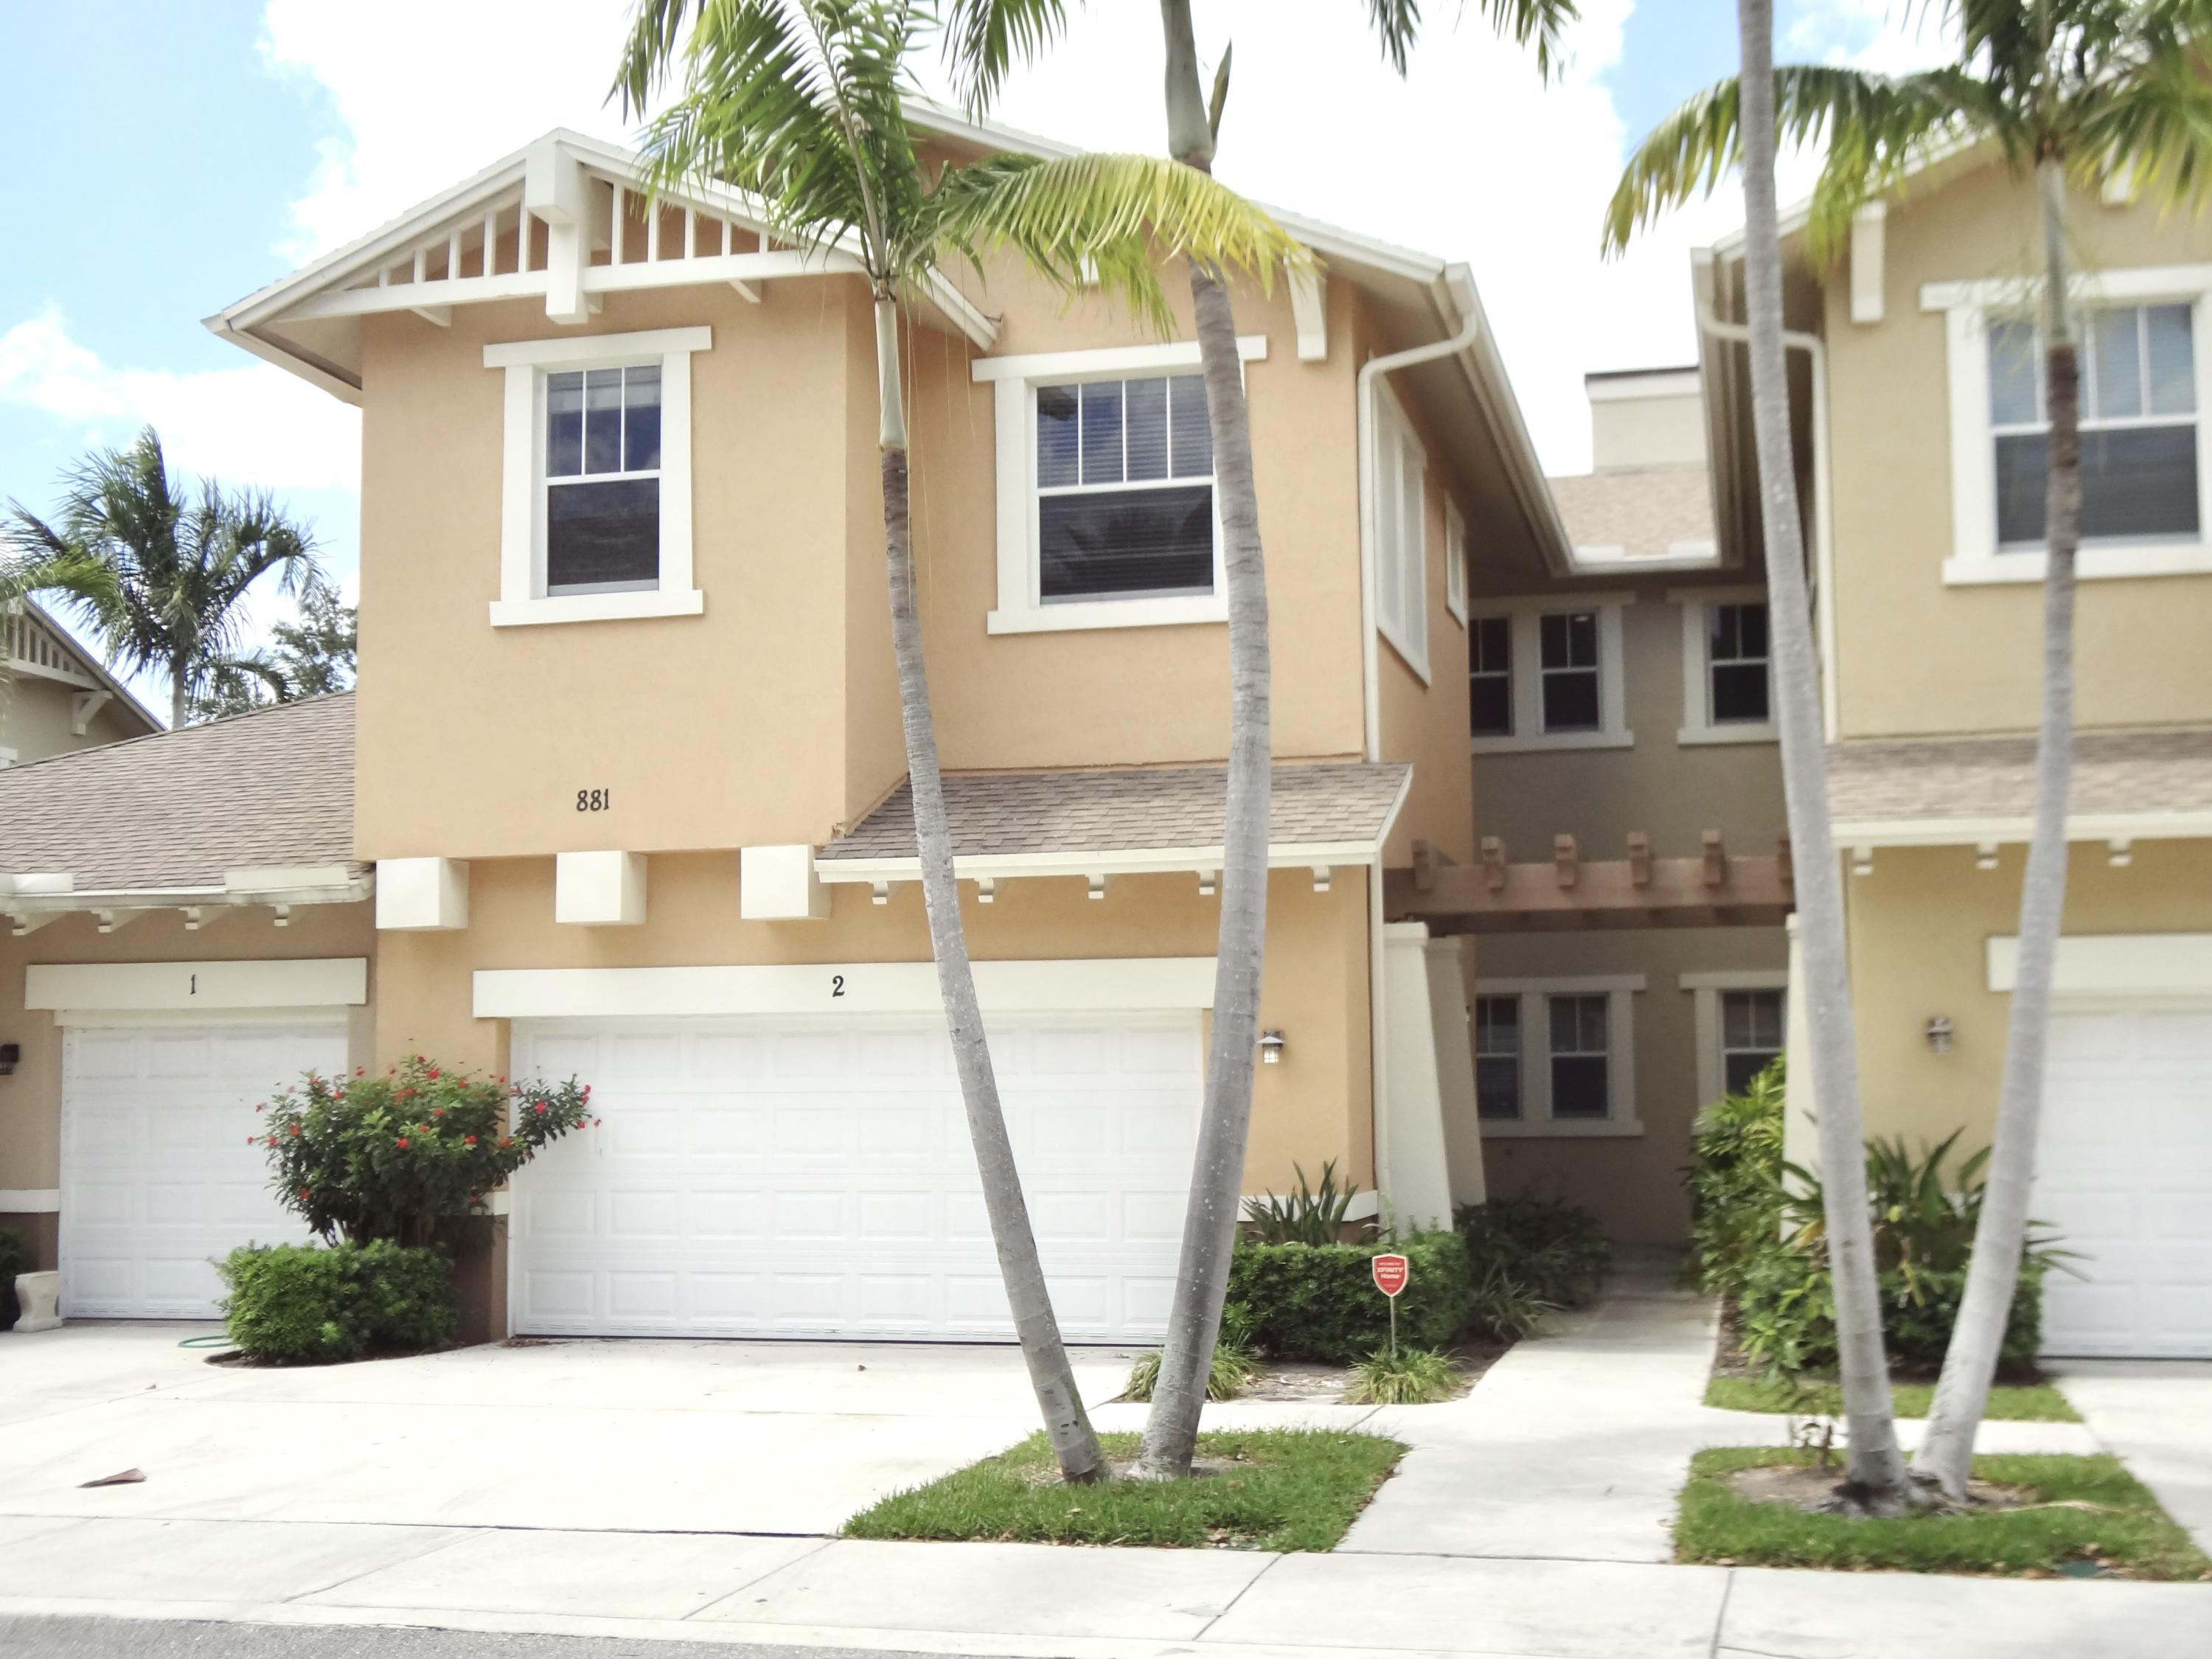 881 Marina Del Ray Lane 2 West Palm Beach, FL 33401